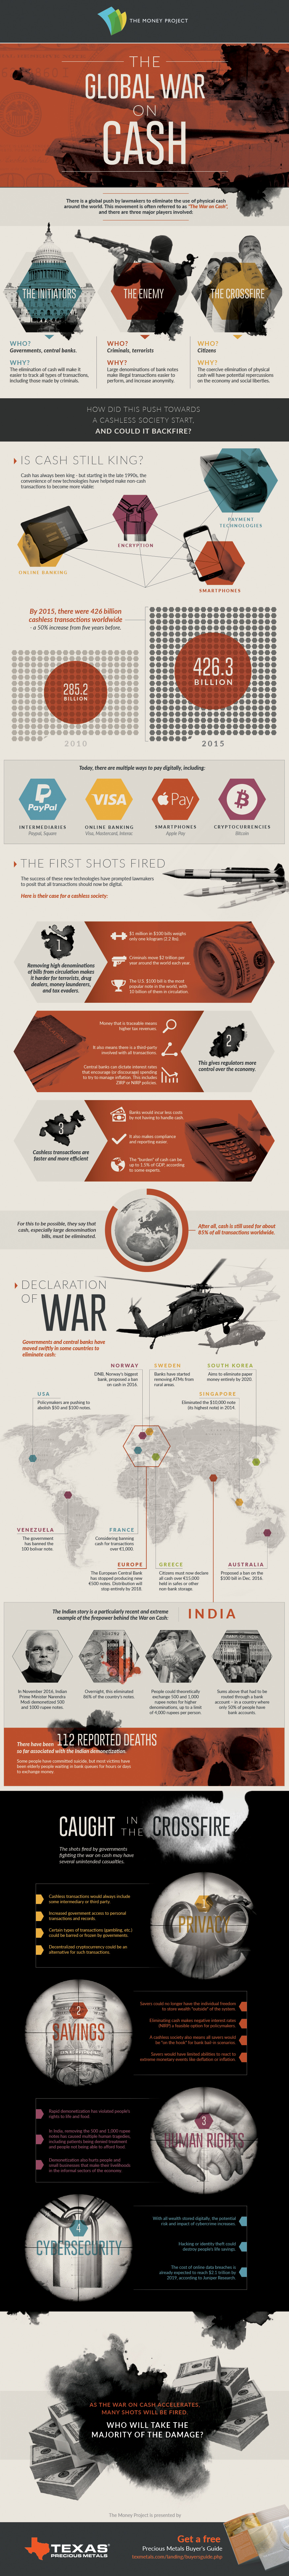 war-on-cash-infographic.jpg?w=1360